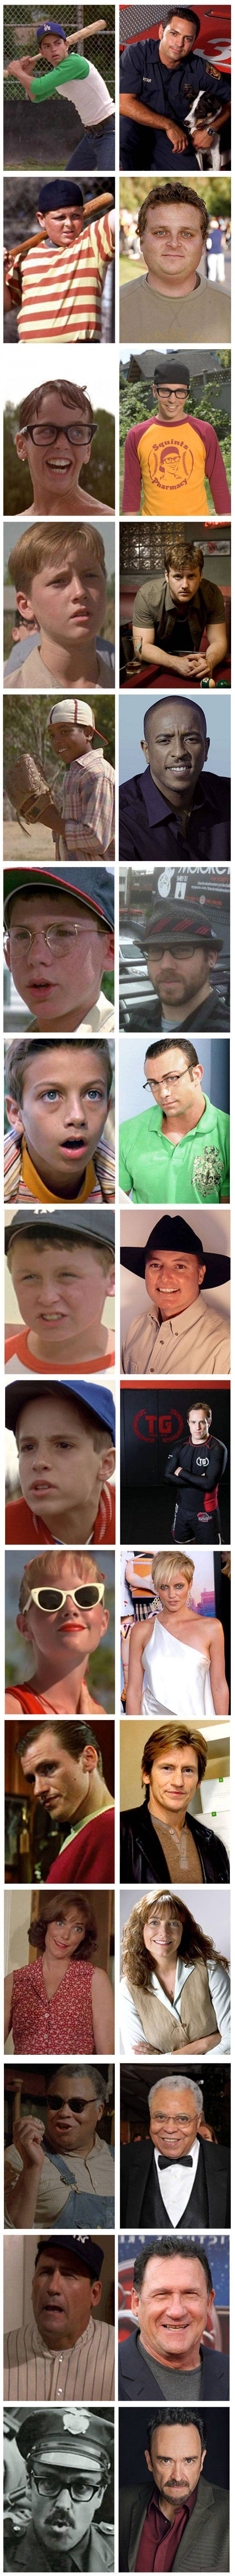 The Sandlot Then and Now  One of the Greatest Movies Ever!!